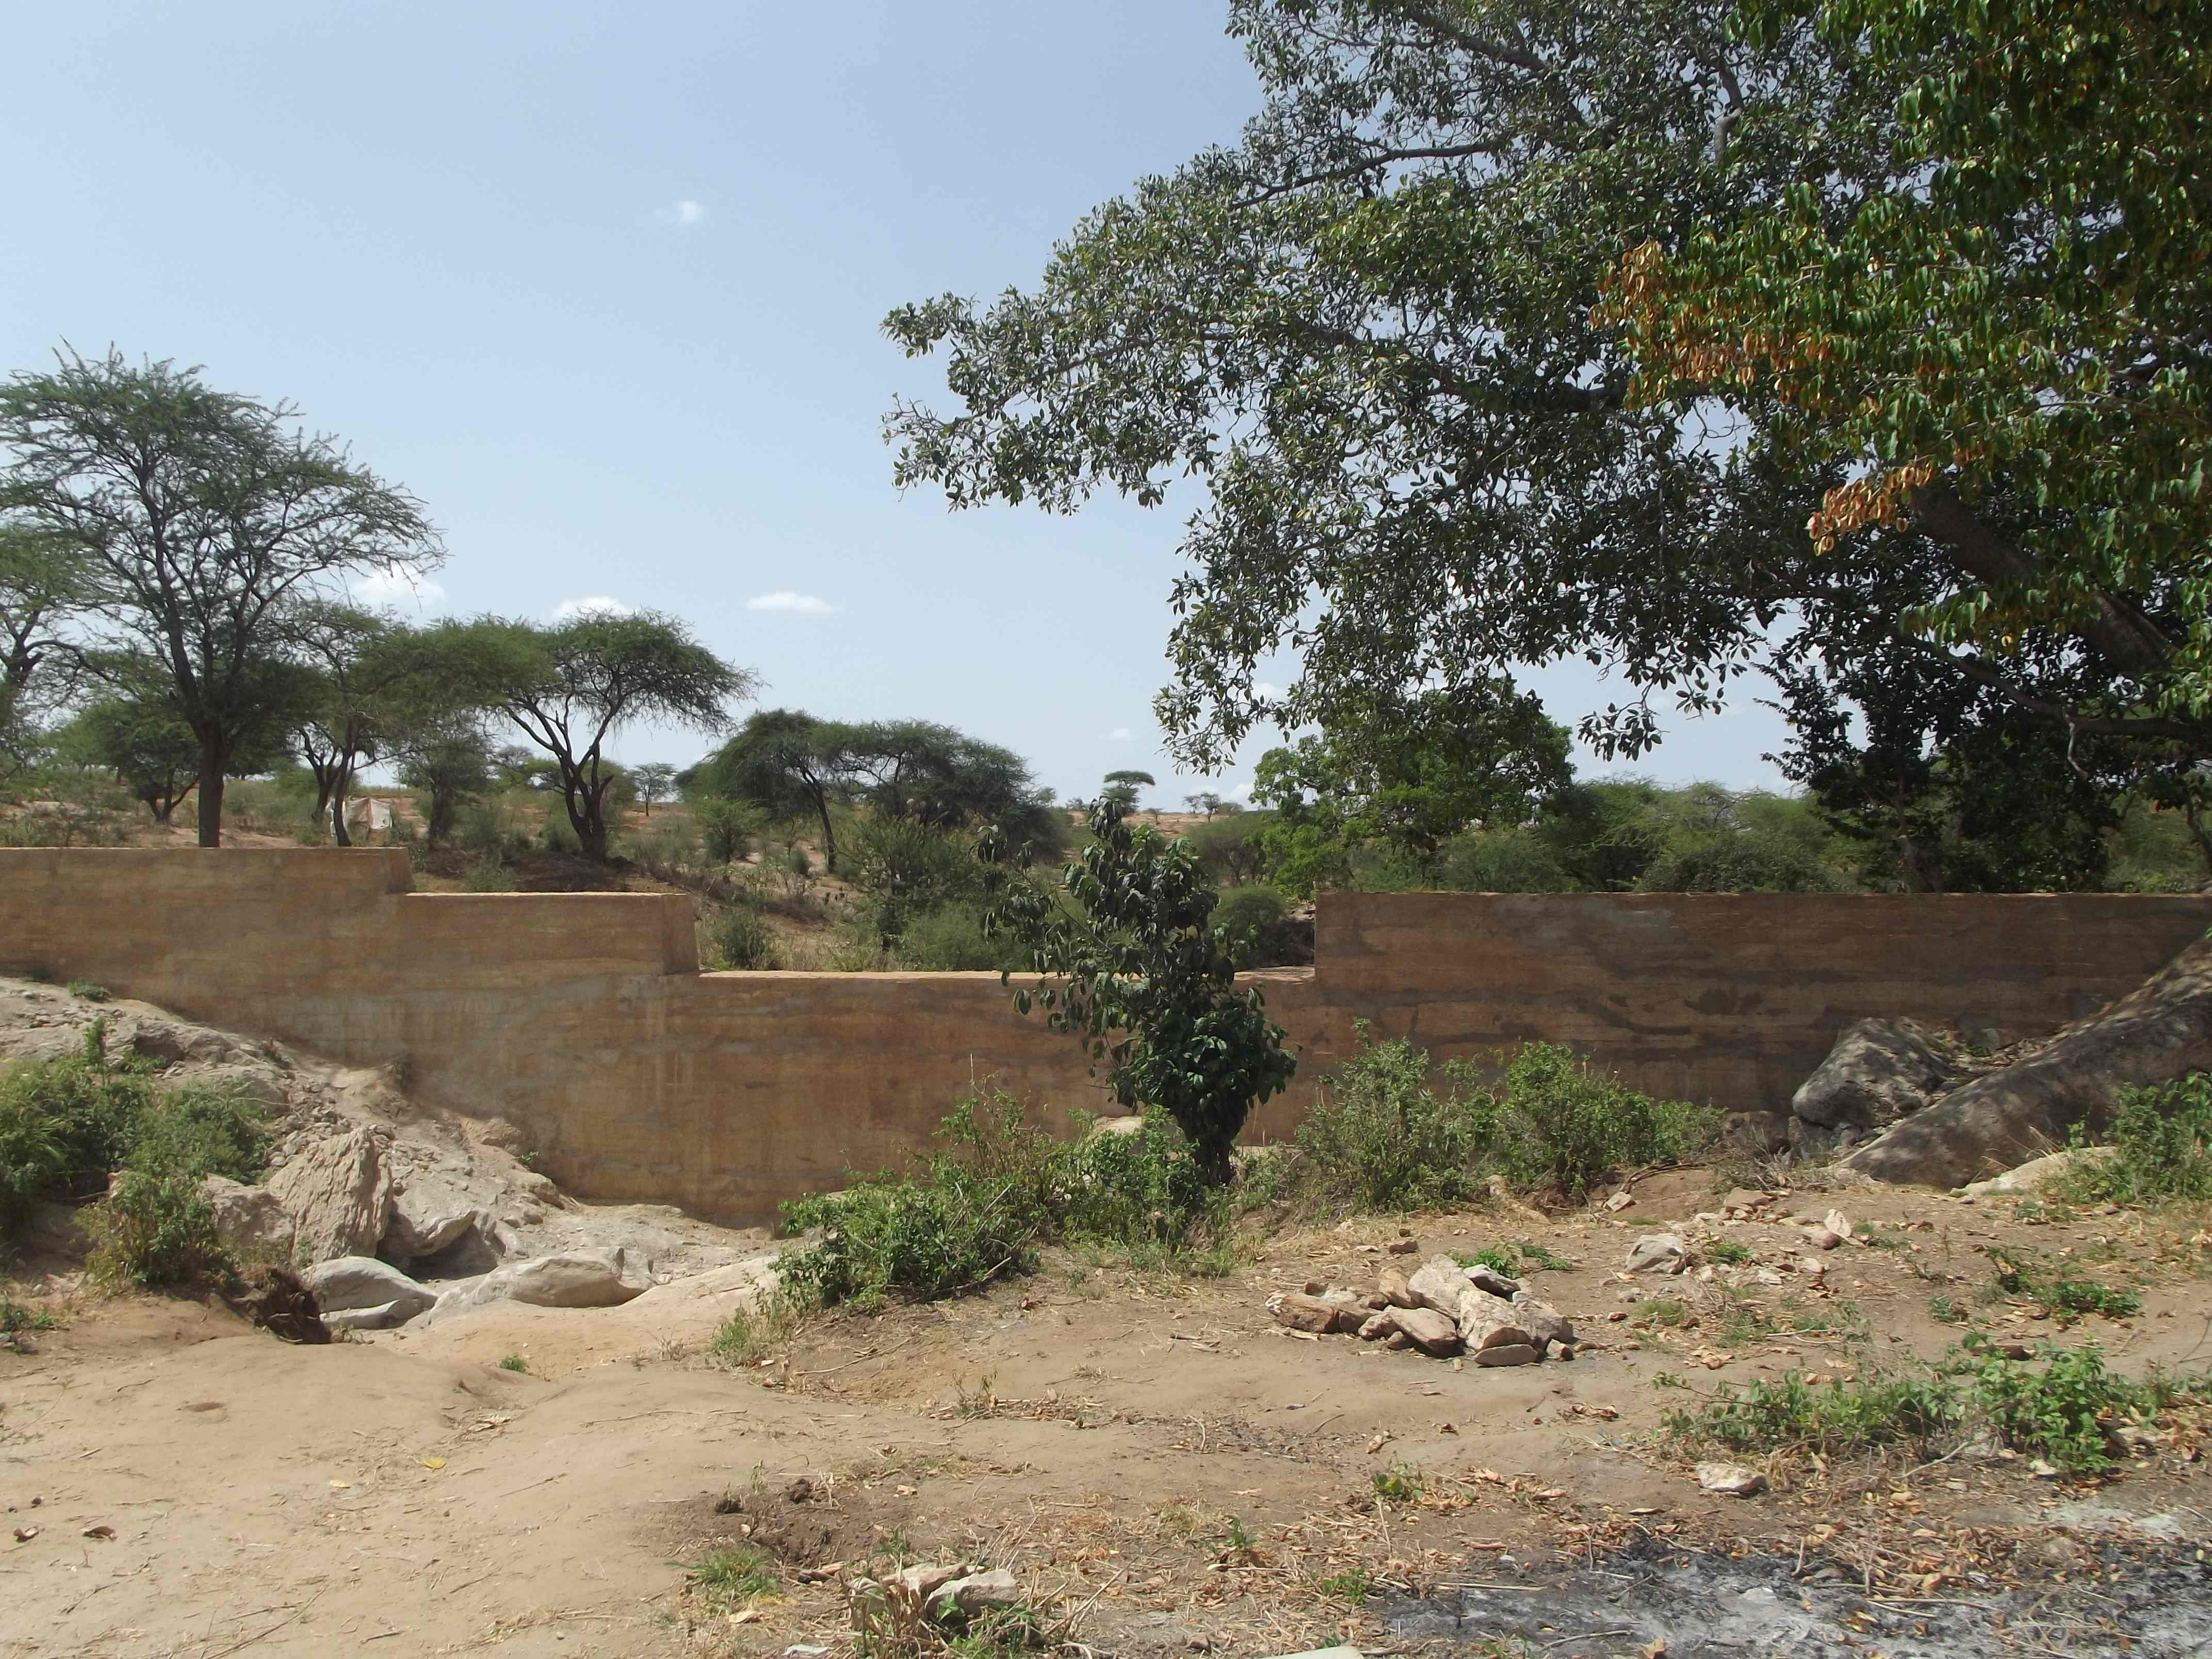 The Water Project : vinya-wa-kyangwasi-shg-sd-12018-dls-ac-june-2012-1-3